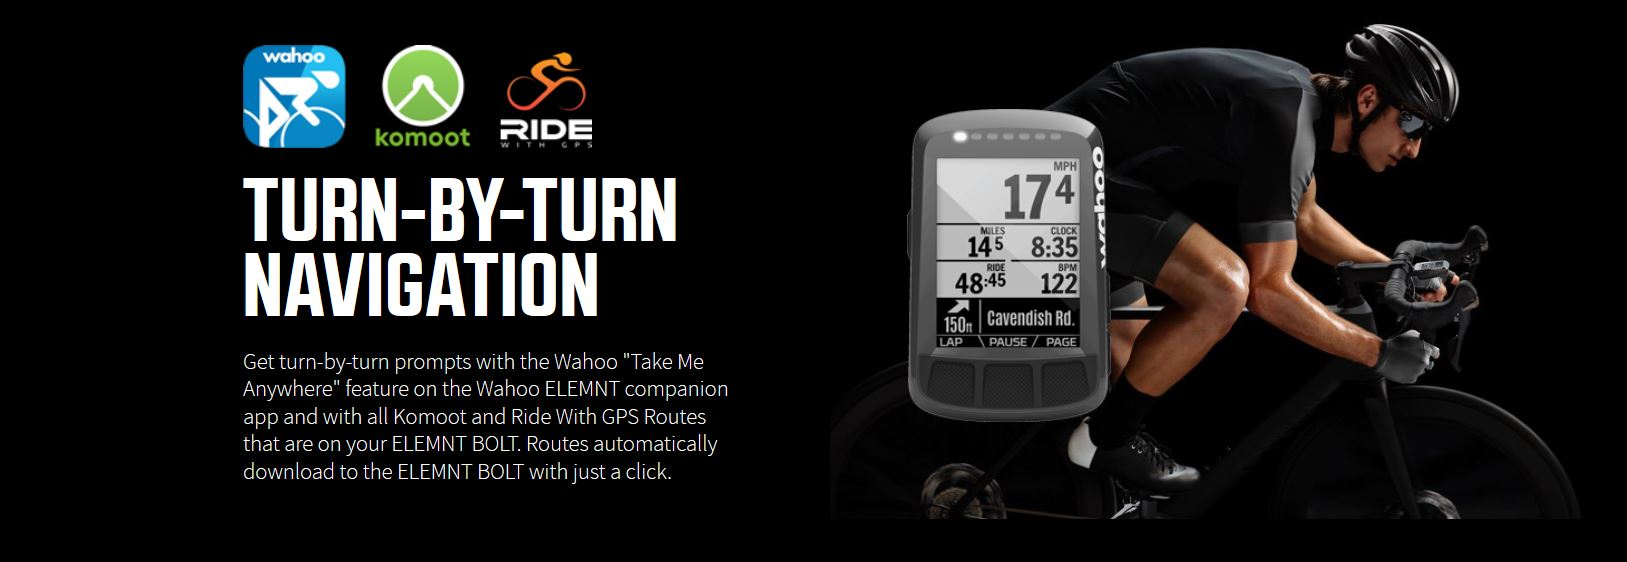 e9f6d7c3f78 ELEMNT BOLT is the first, fully aerodynamic GPS bike computer! Its patent  pending design creates an integrated system of computer and mount which  results in ...